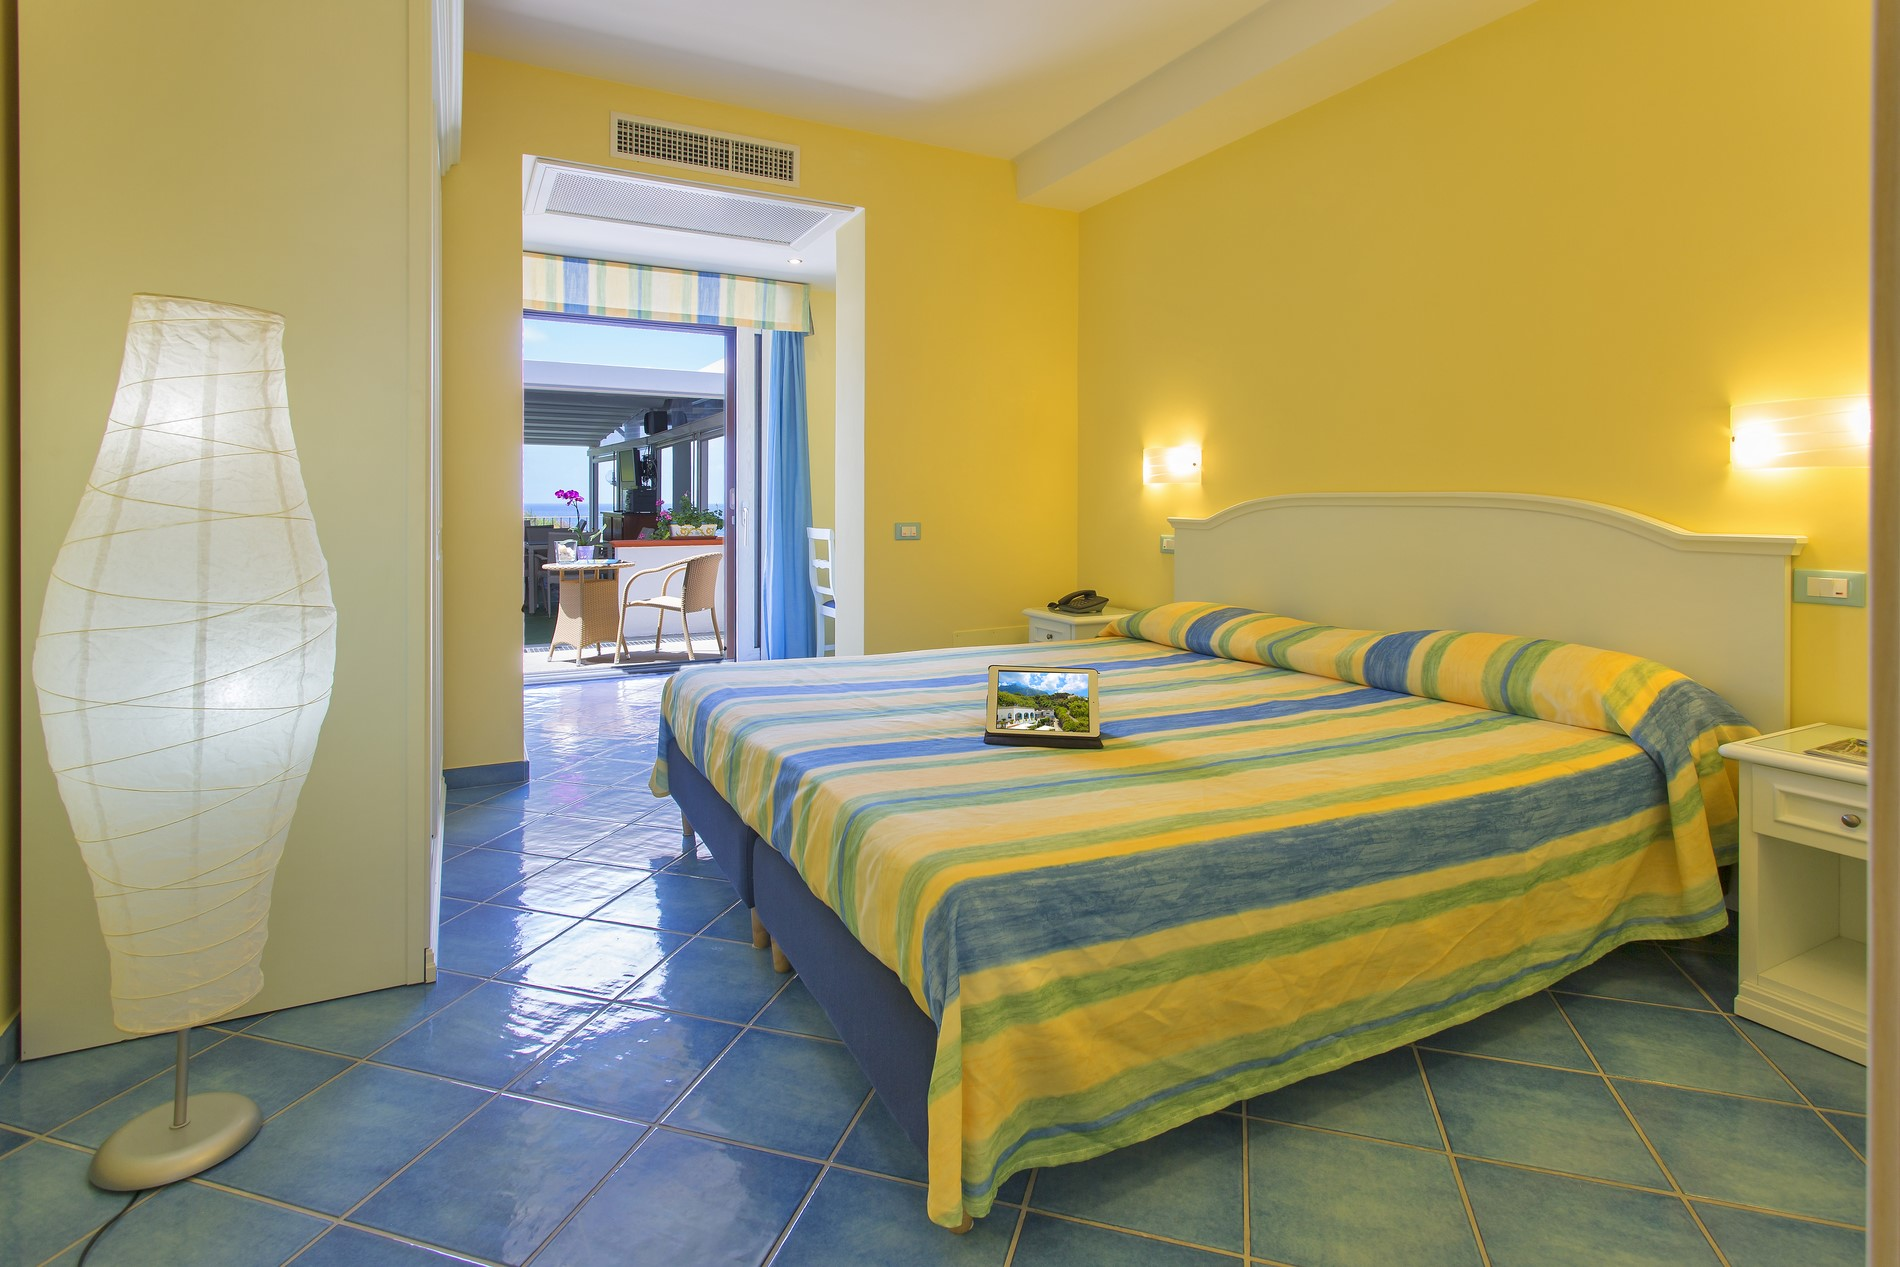 http://www.hotelcavadellisola.it/wp-content/uploads/2016/07/confort2-Copia-1.jpg